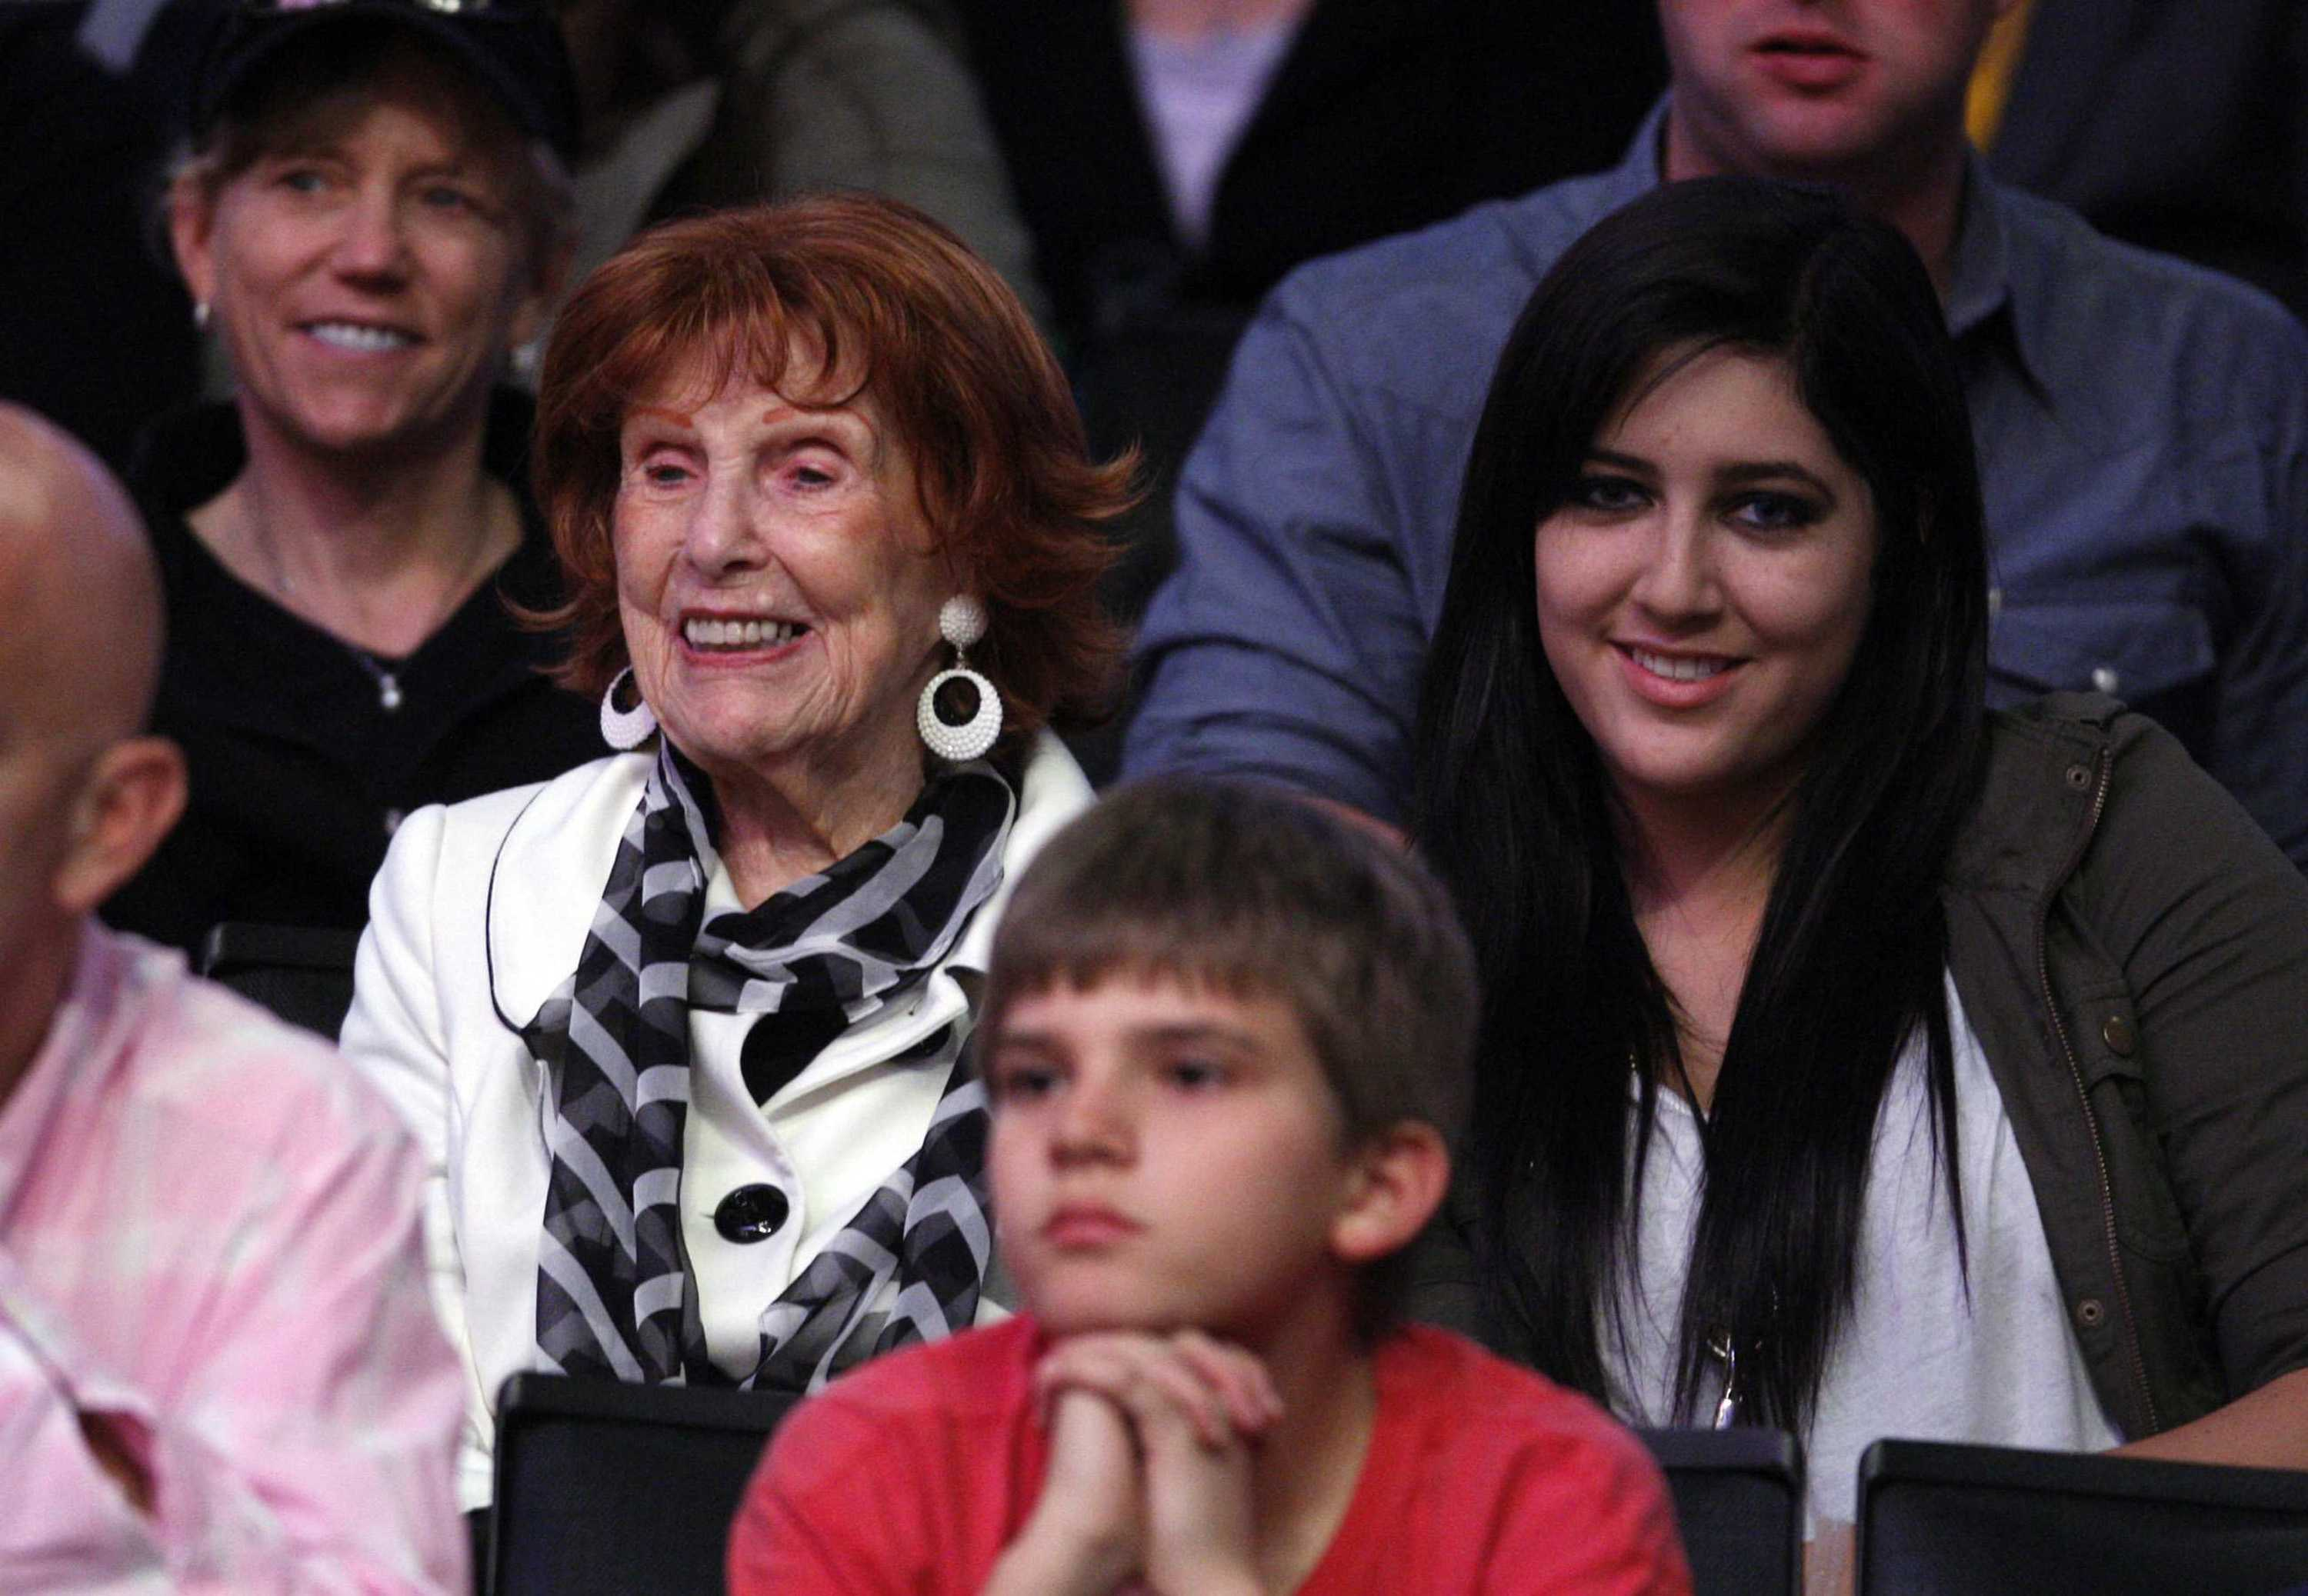 Marge Hearn, 94, left, widow of Los Angeles Lakers spotscaster Chick Hearn, watches the Lakers play the New Orleans Hornets with her great granddaughter, Kayla Hearn, at the Staples Center in Los Angeles, California, on March 27, 2011. (Allen J. Schaben/Los Angeles Times/MCT) Photo credit: MCT